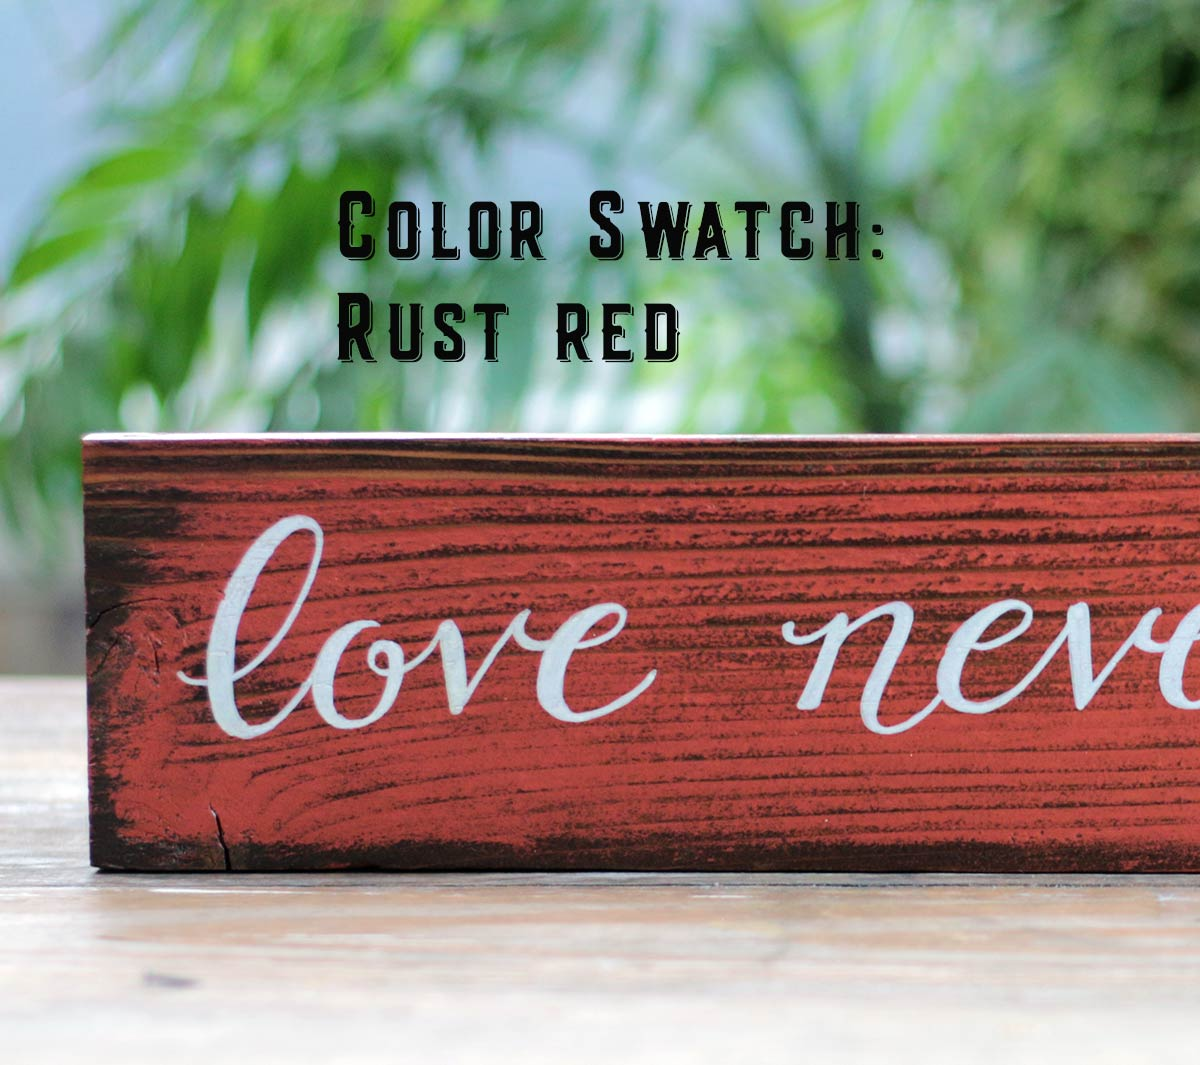 Color Swatch - Rust Red